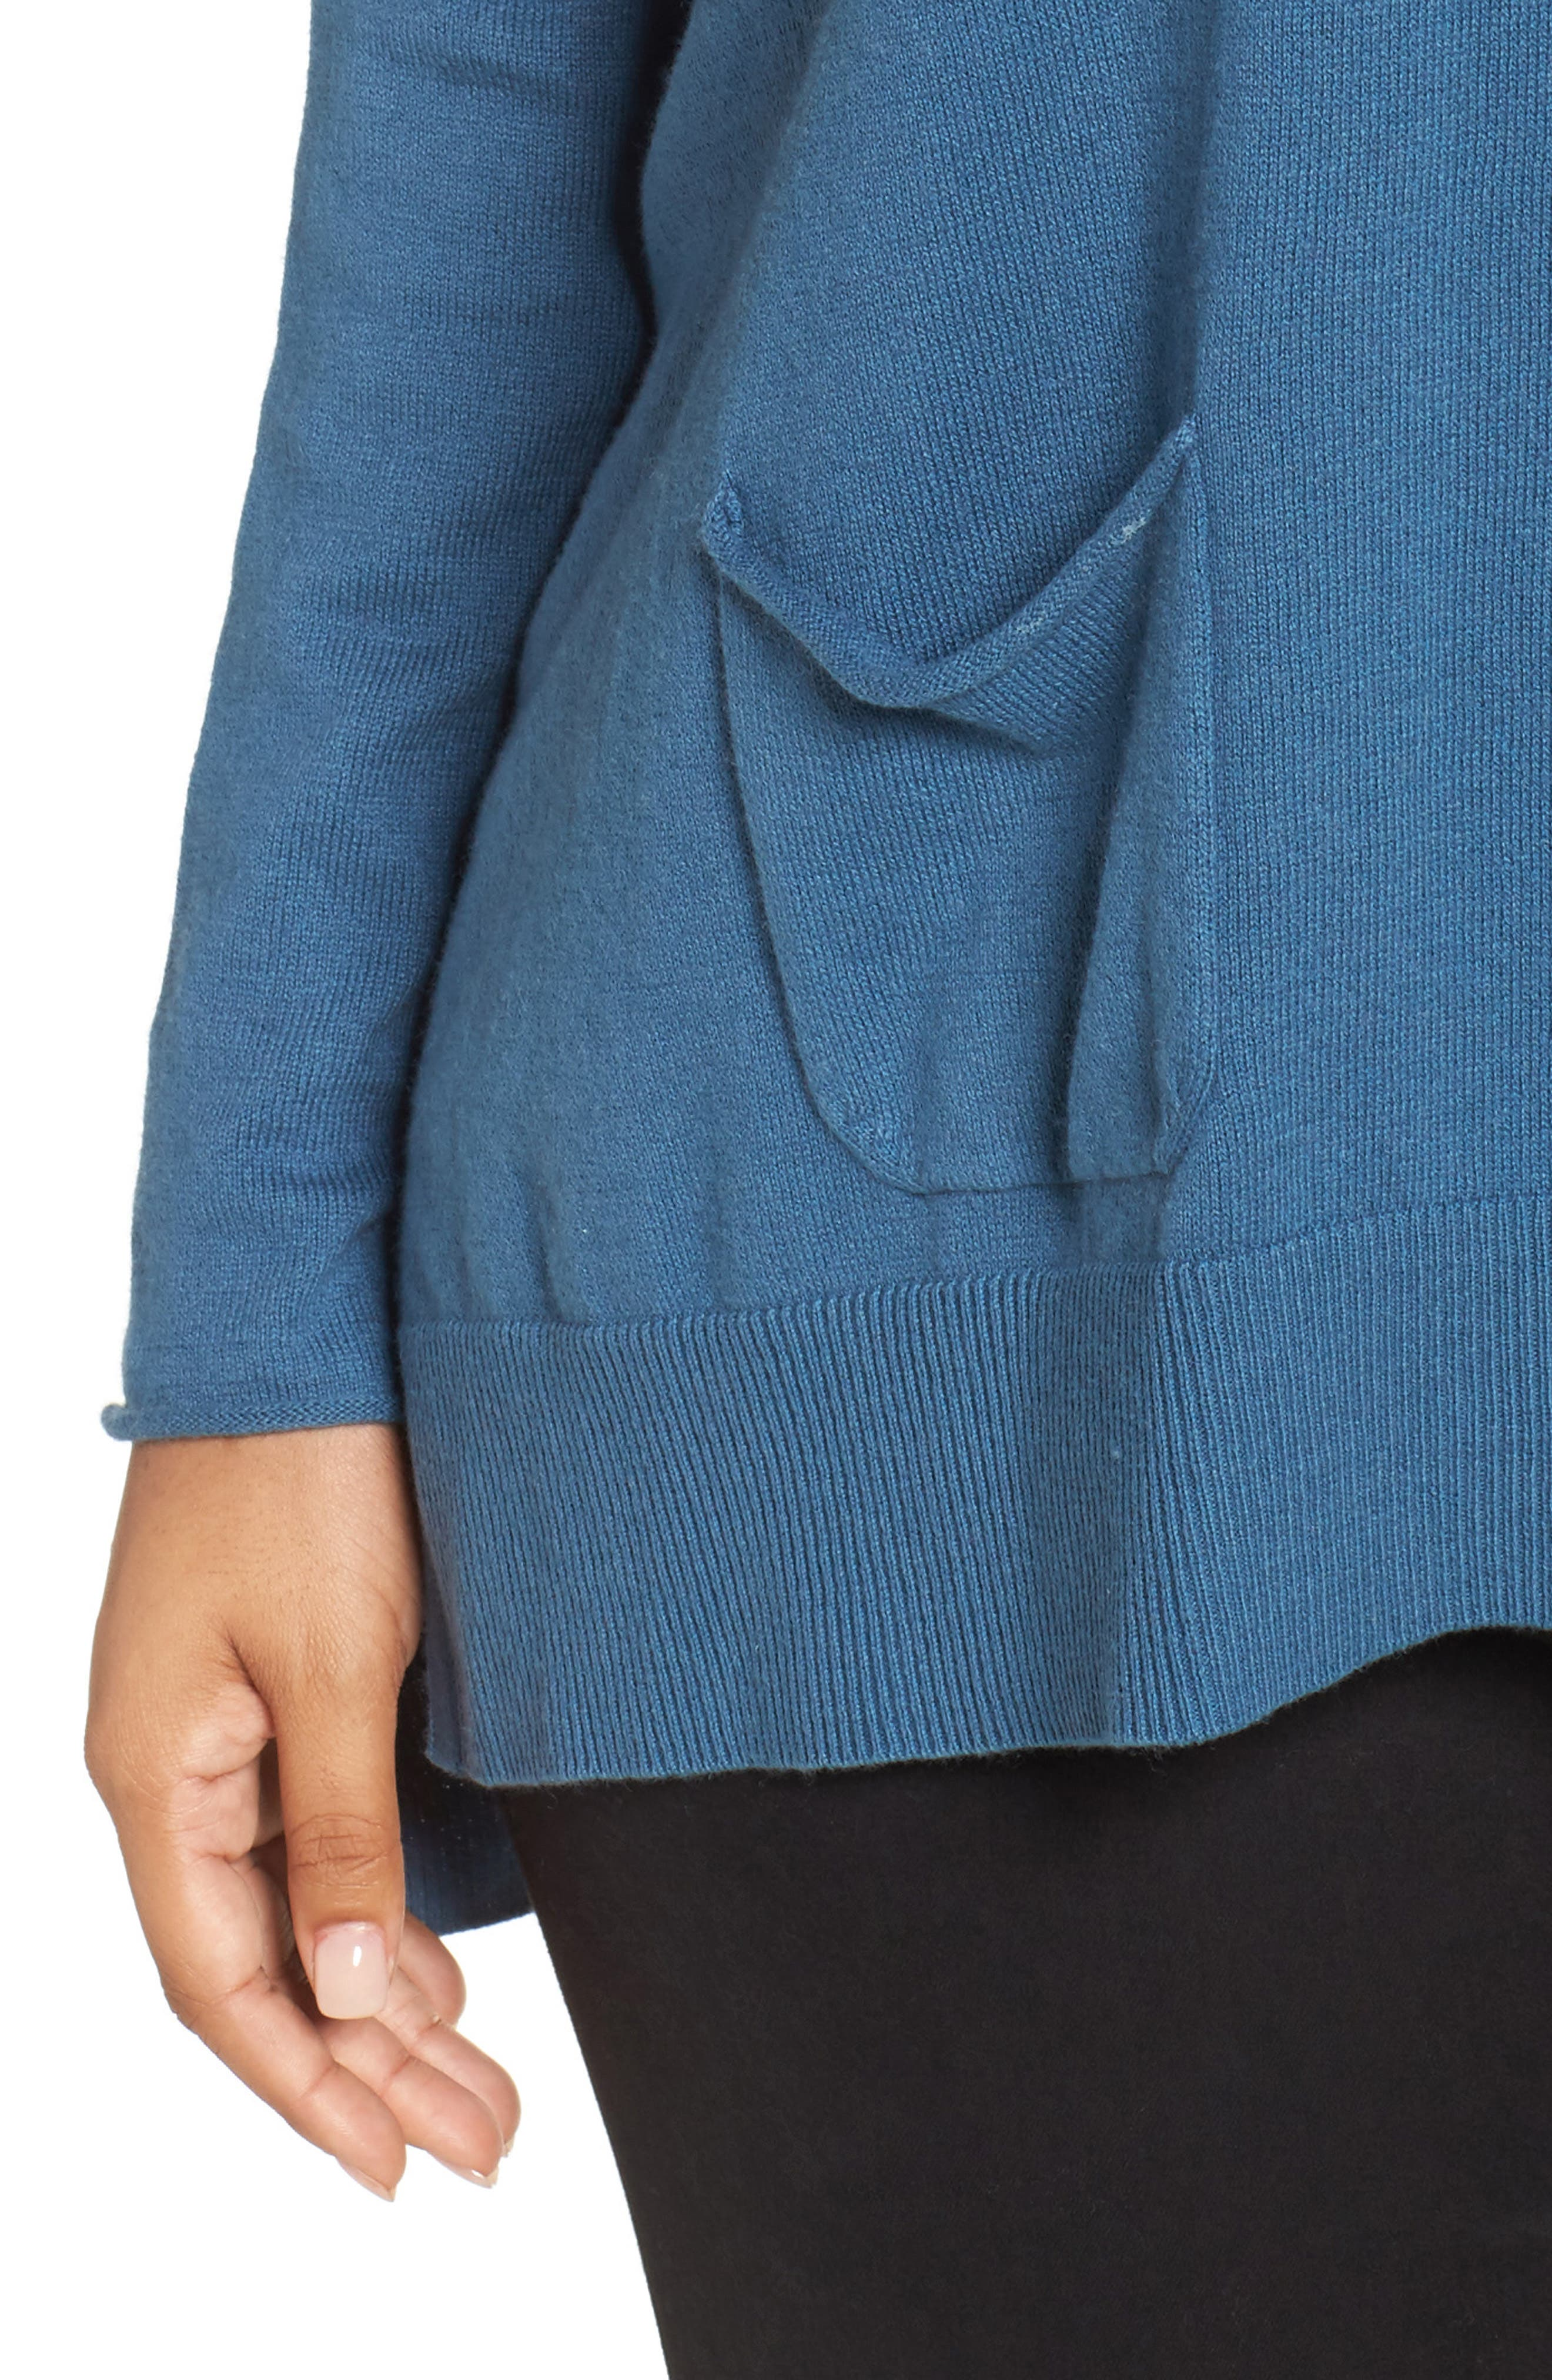 Relaxed Cotton & Cashmere Sweater,                             Alternate thumbnail 4, color,                             Teal Sound